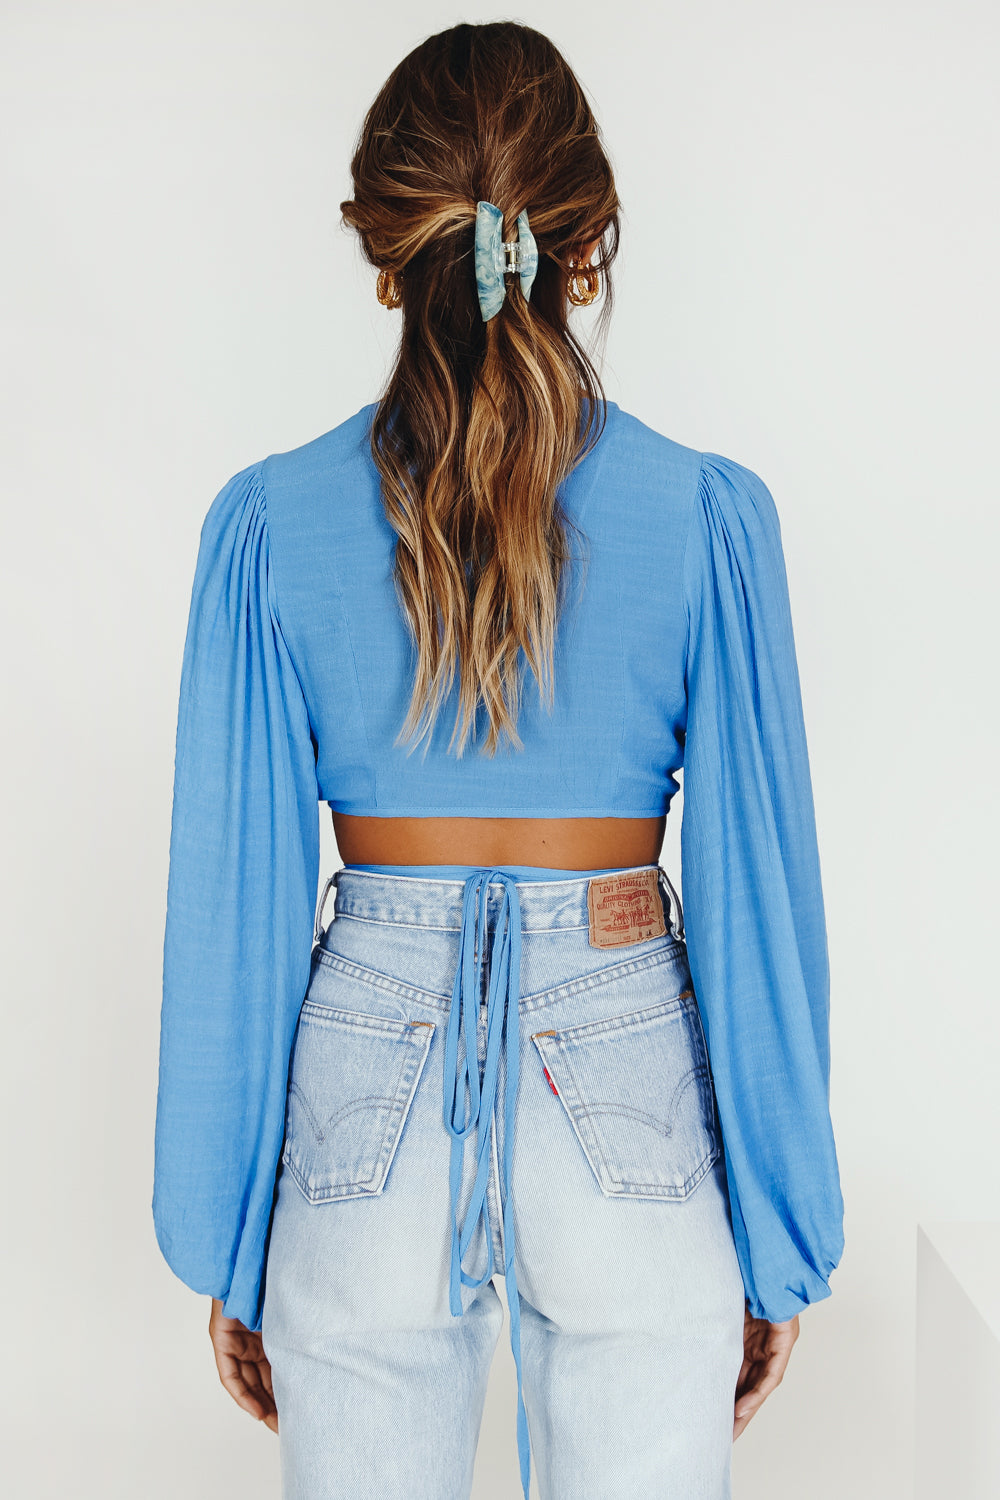 Feels Like A Holiday Tie Top // Blue